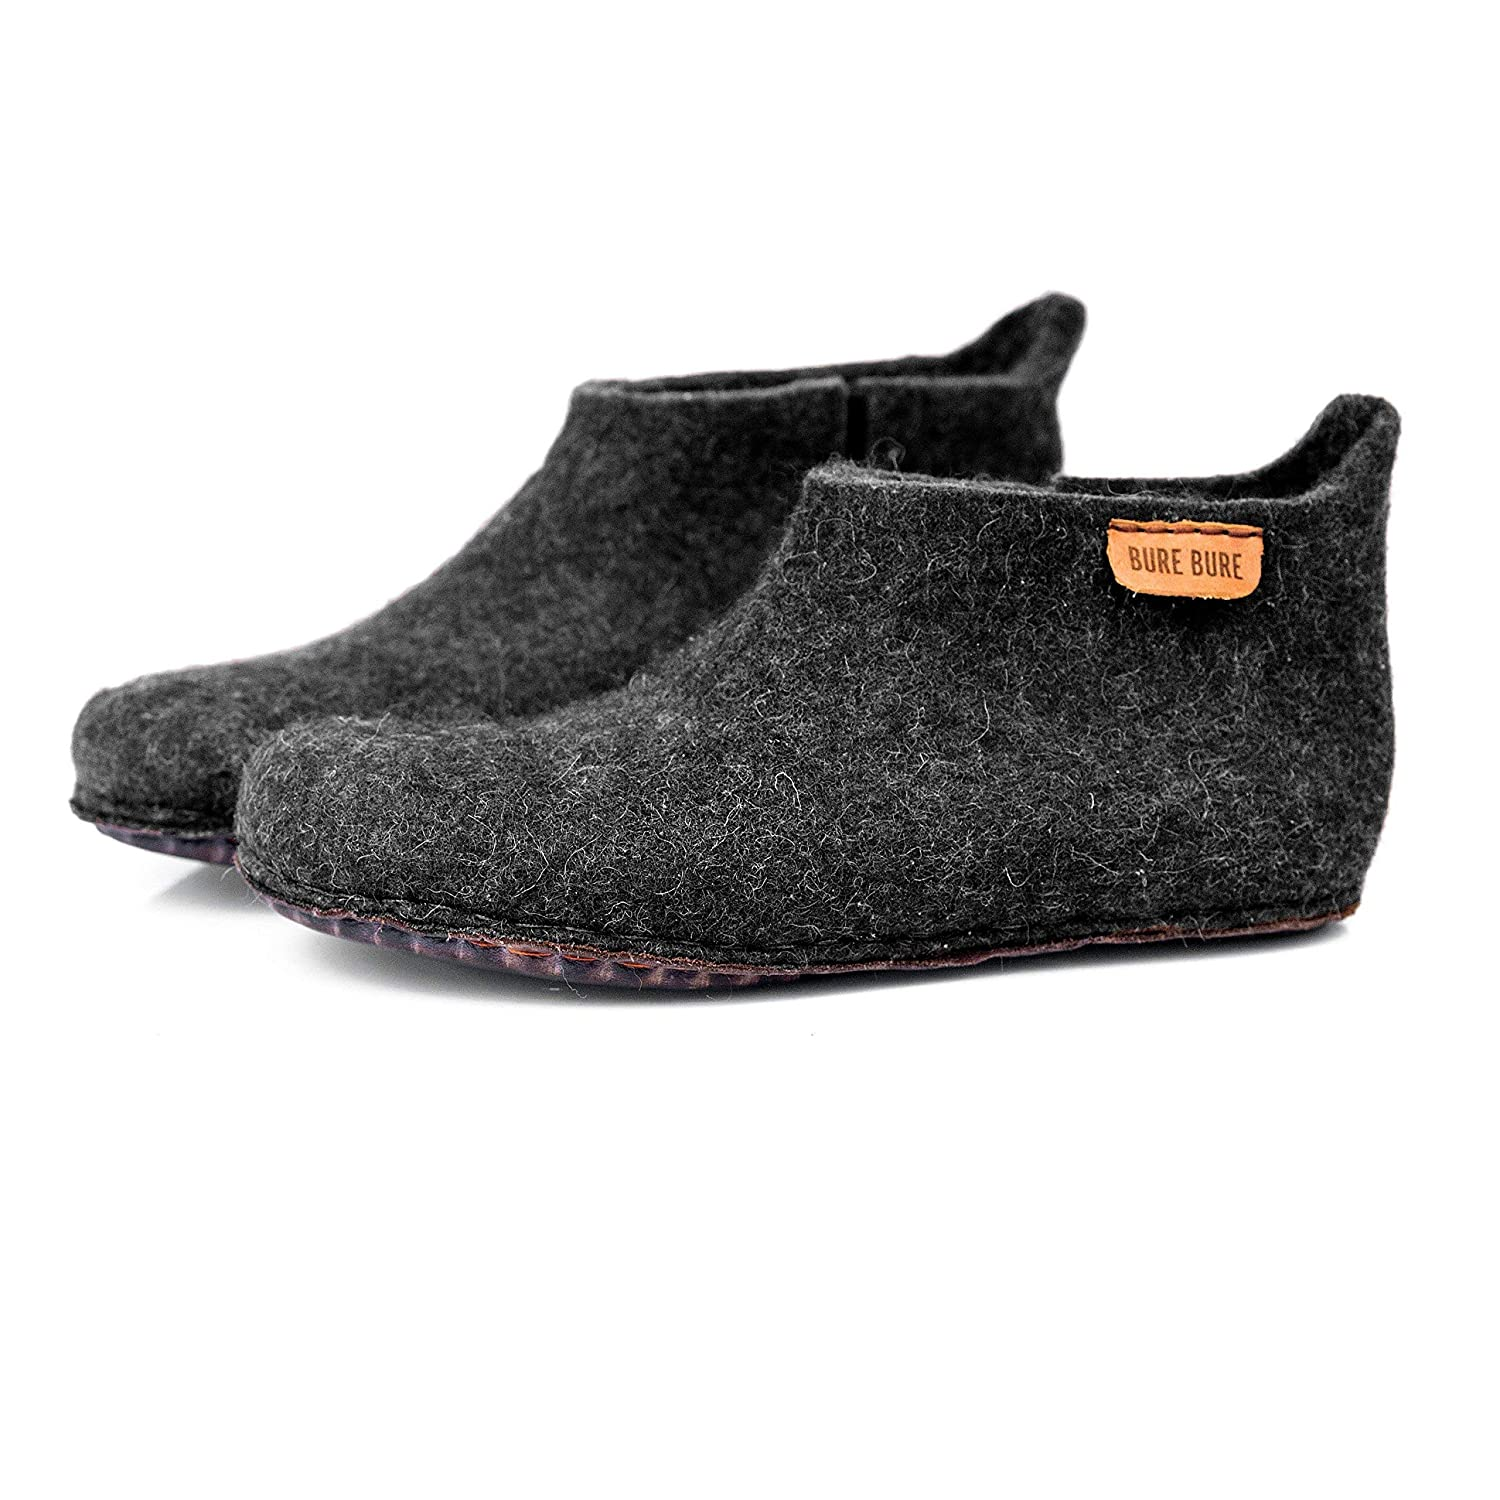 BureBure Classic Felted Wool Ankle Boots Slippers for Women Handmade in Europe